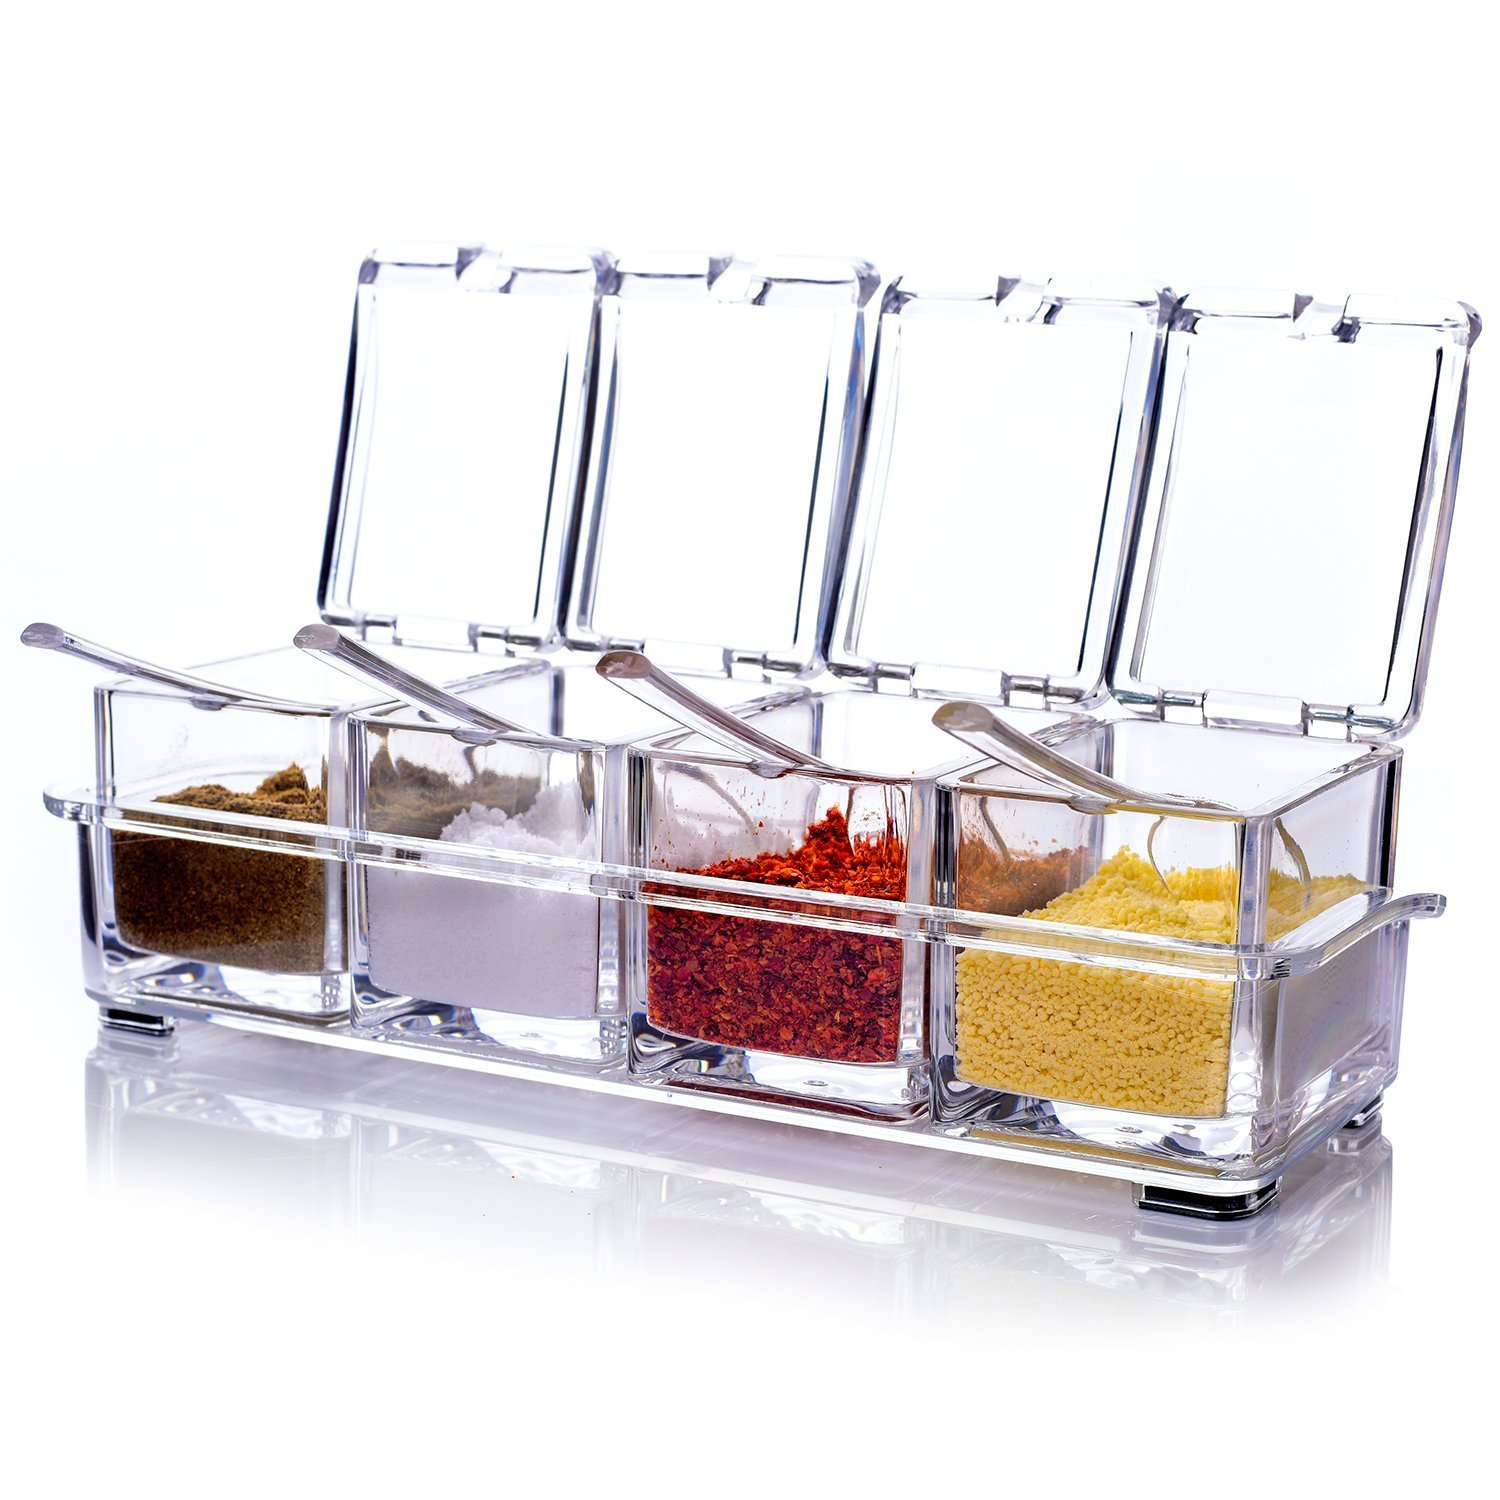 Transparent Acrylic Seasoning Box Four in One Spice Jars with Spoons and Covers for Kitchen Dining Generic